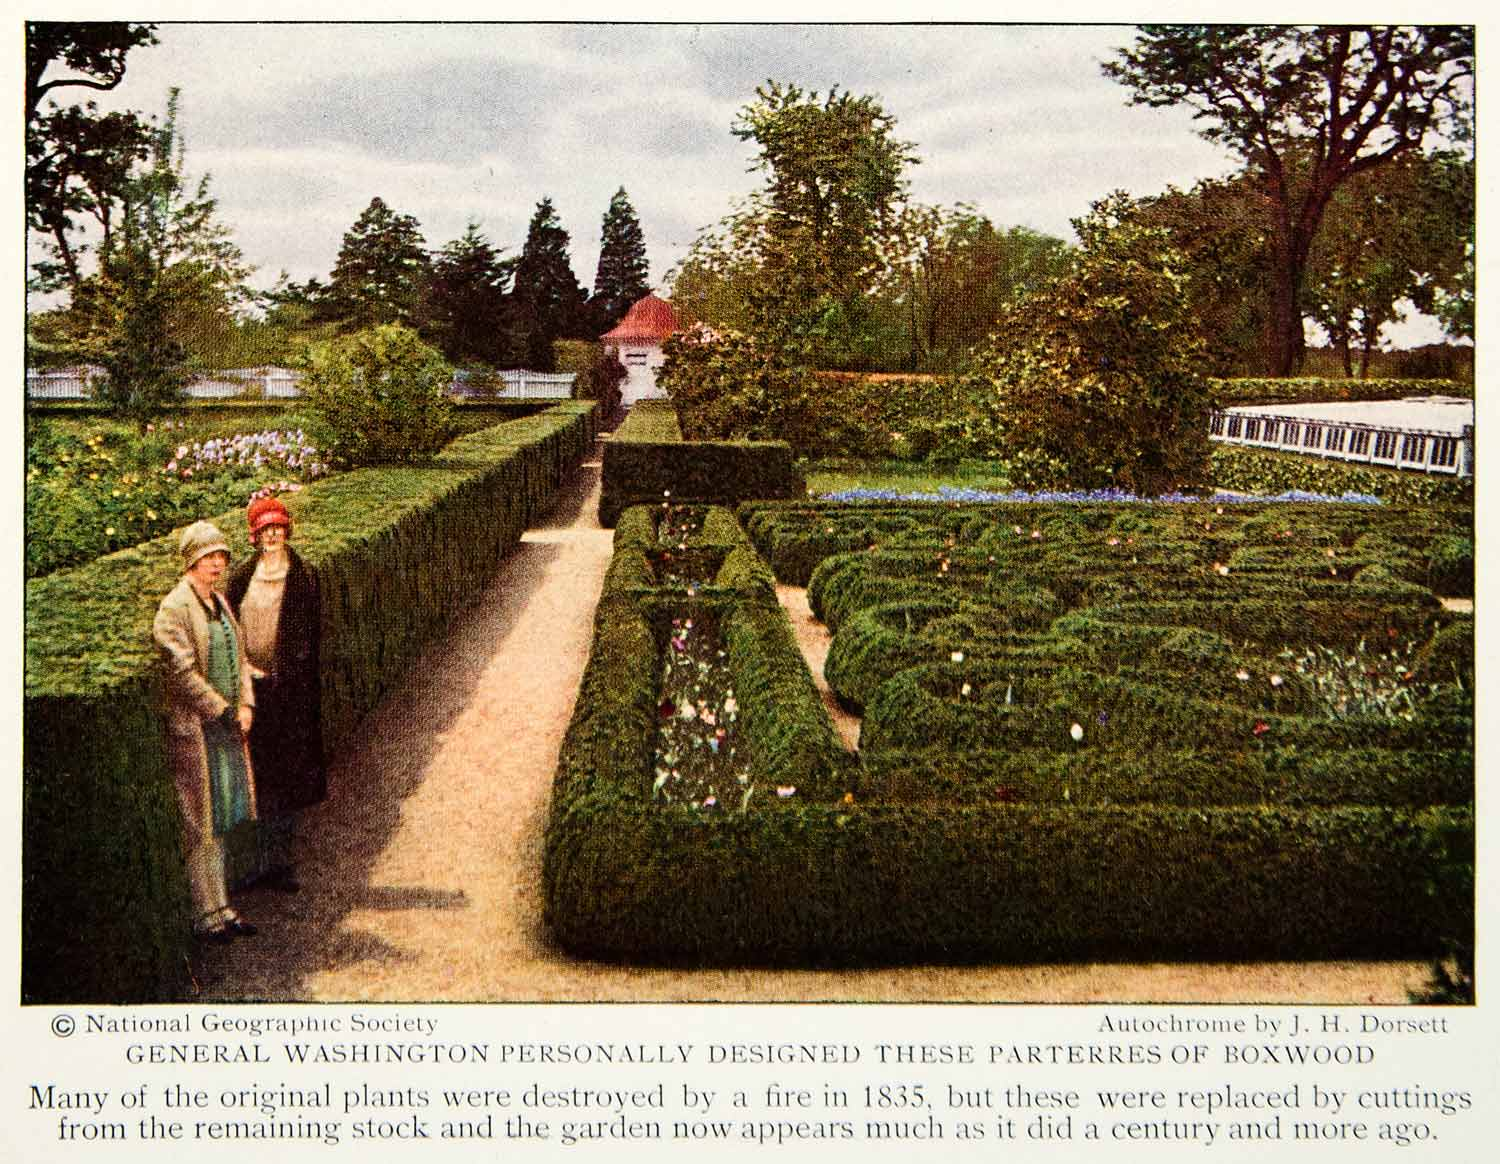 1928 Color Print Mount Vernon George Washington Garden Historical Landmark Image